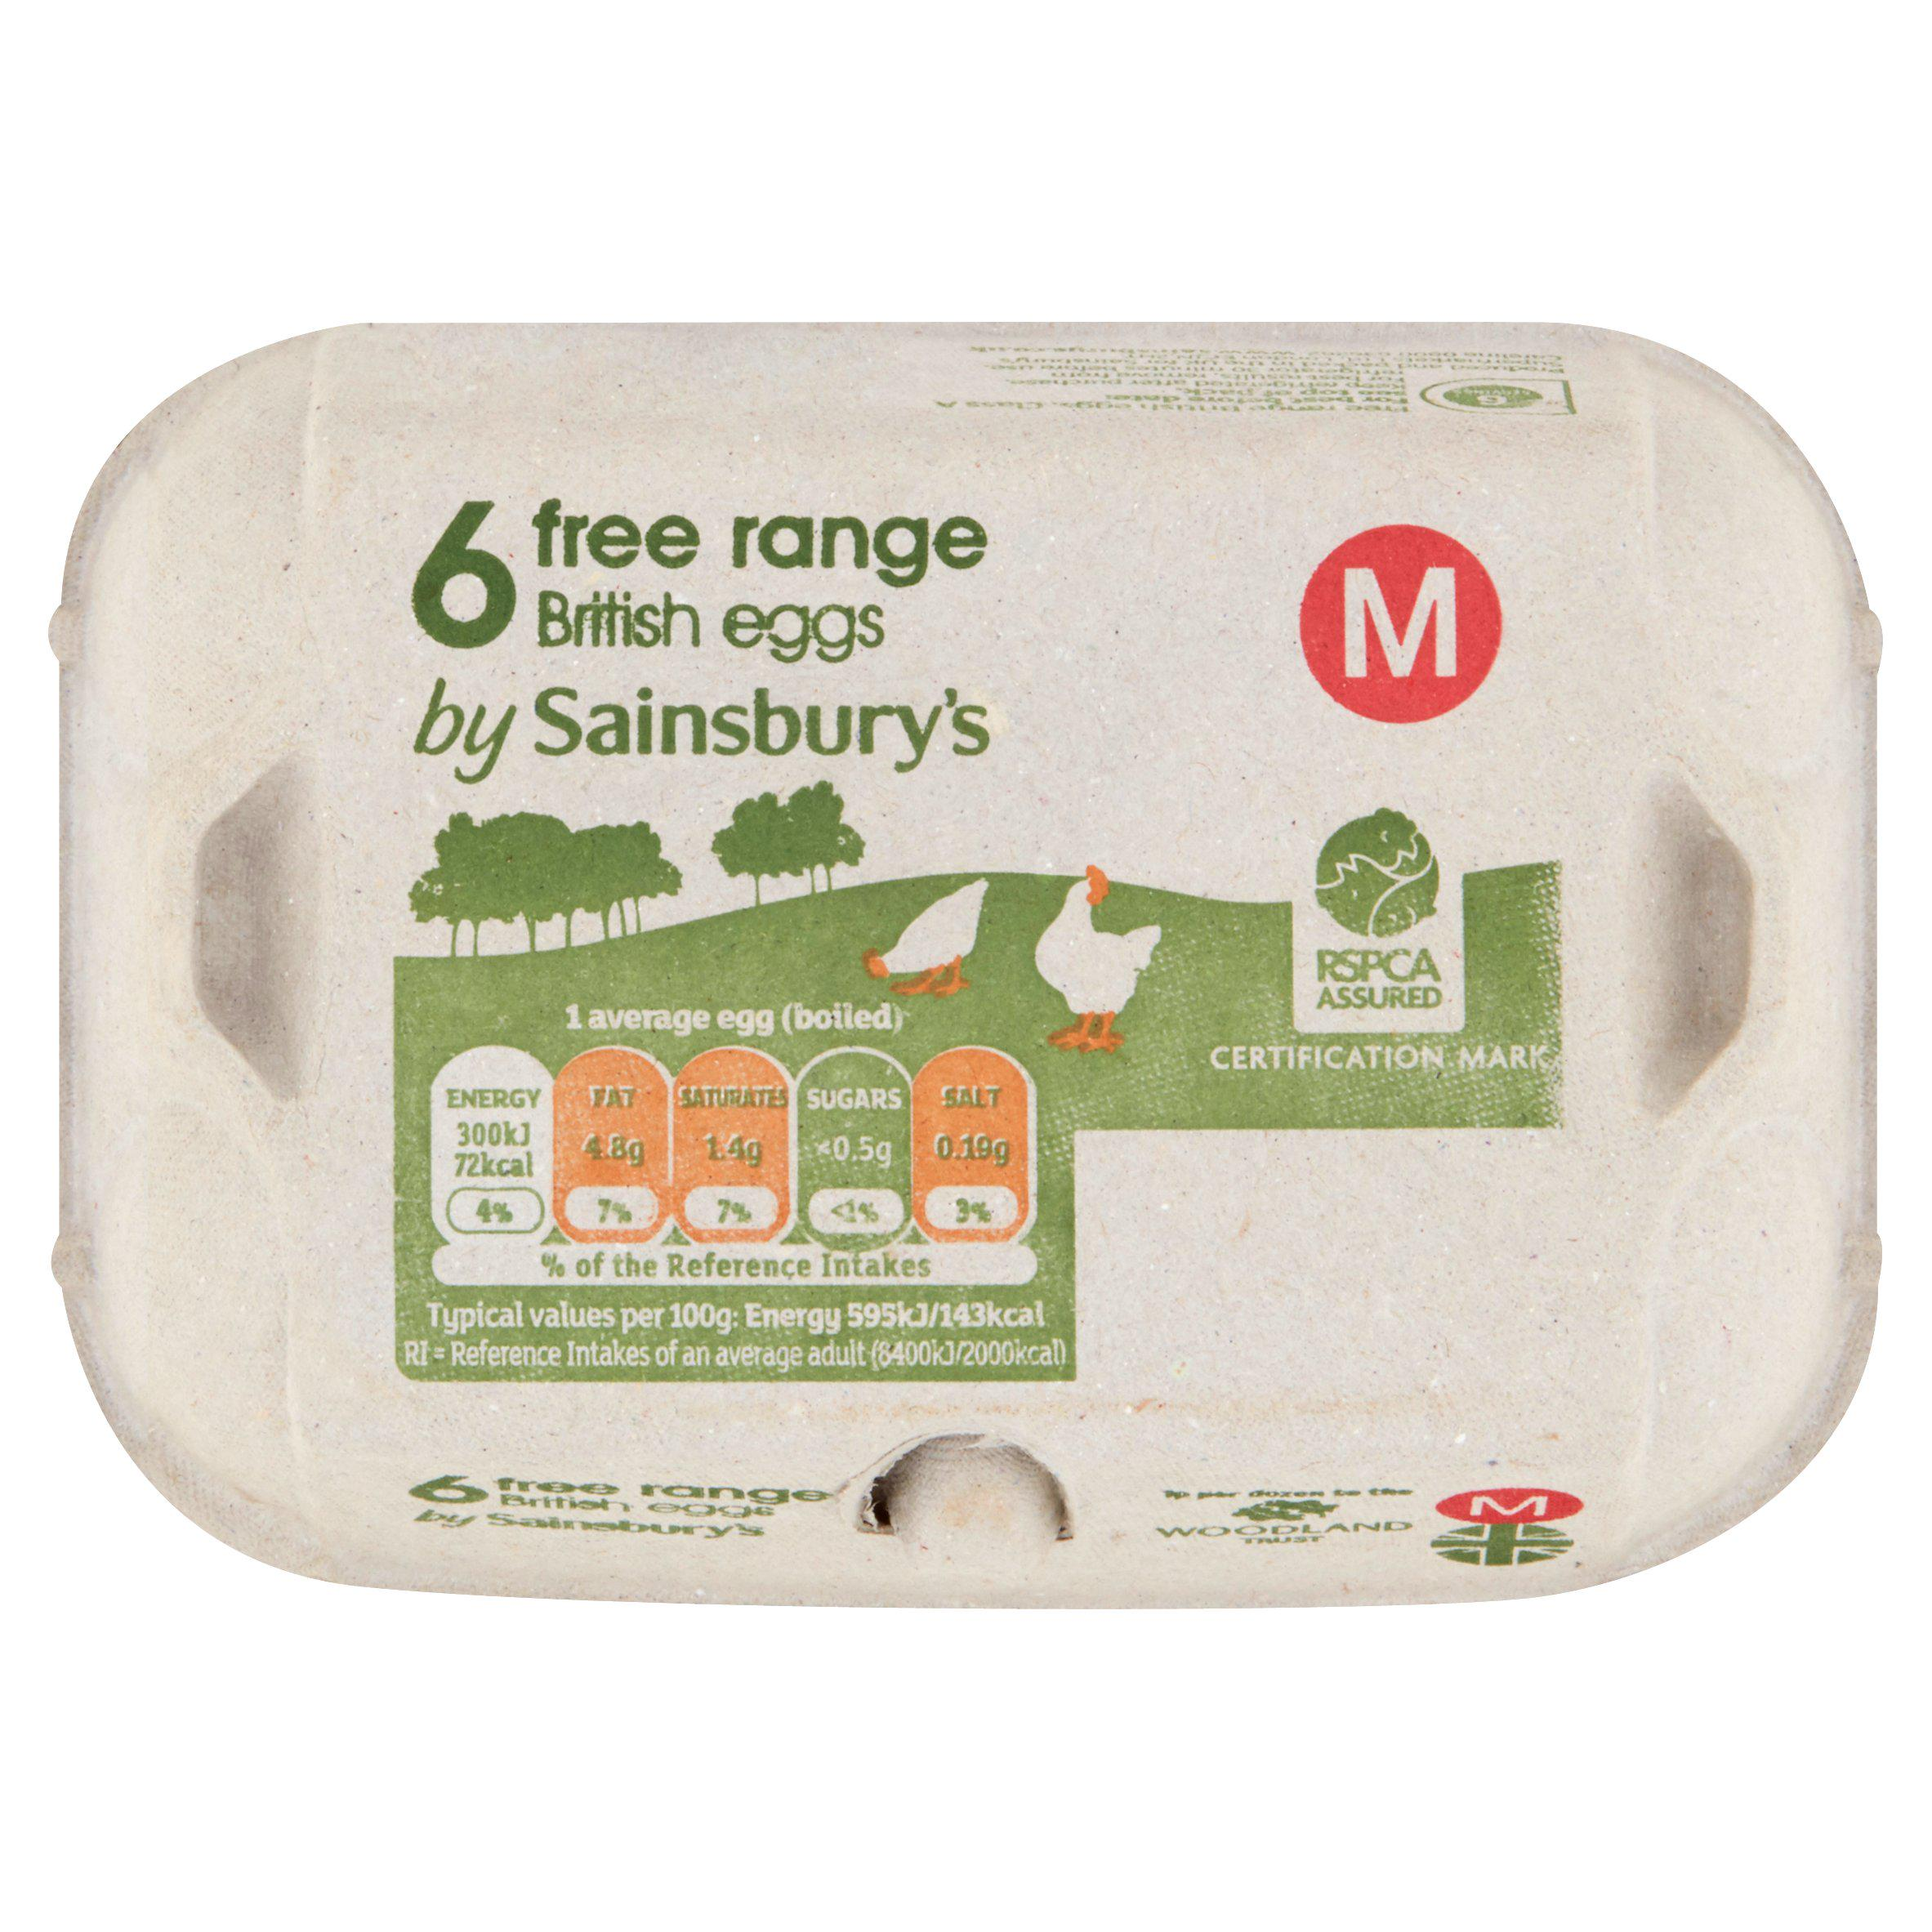 A salmonella warning has been issued over a certain batch of eggs, including this packet here sold at Sainsbury's